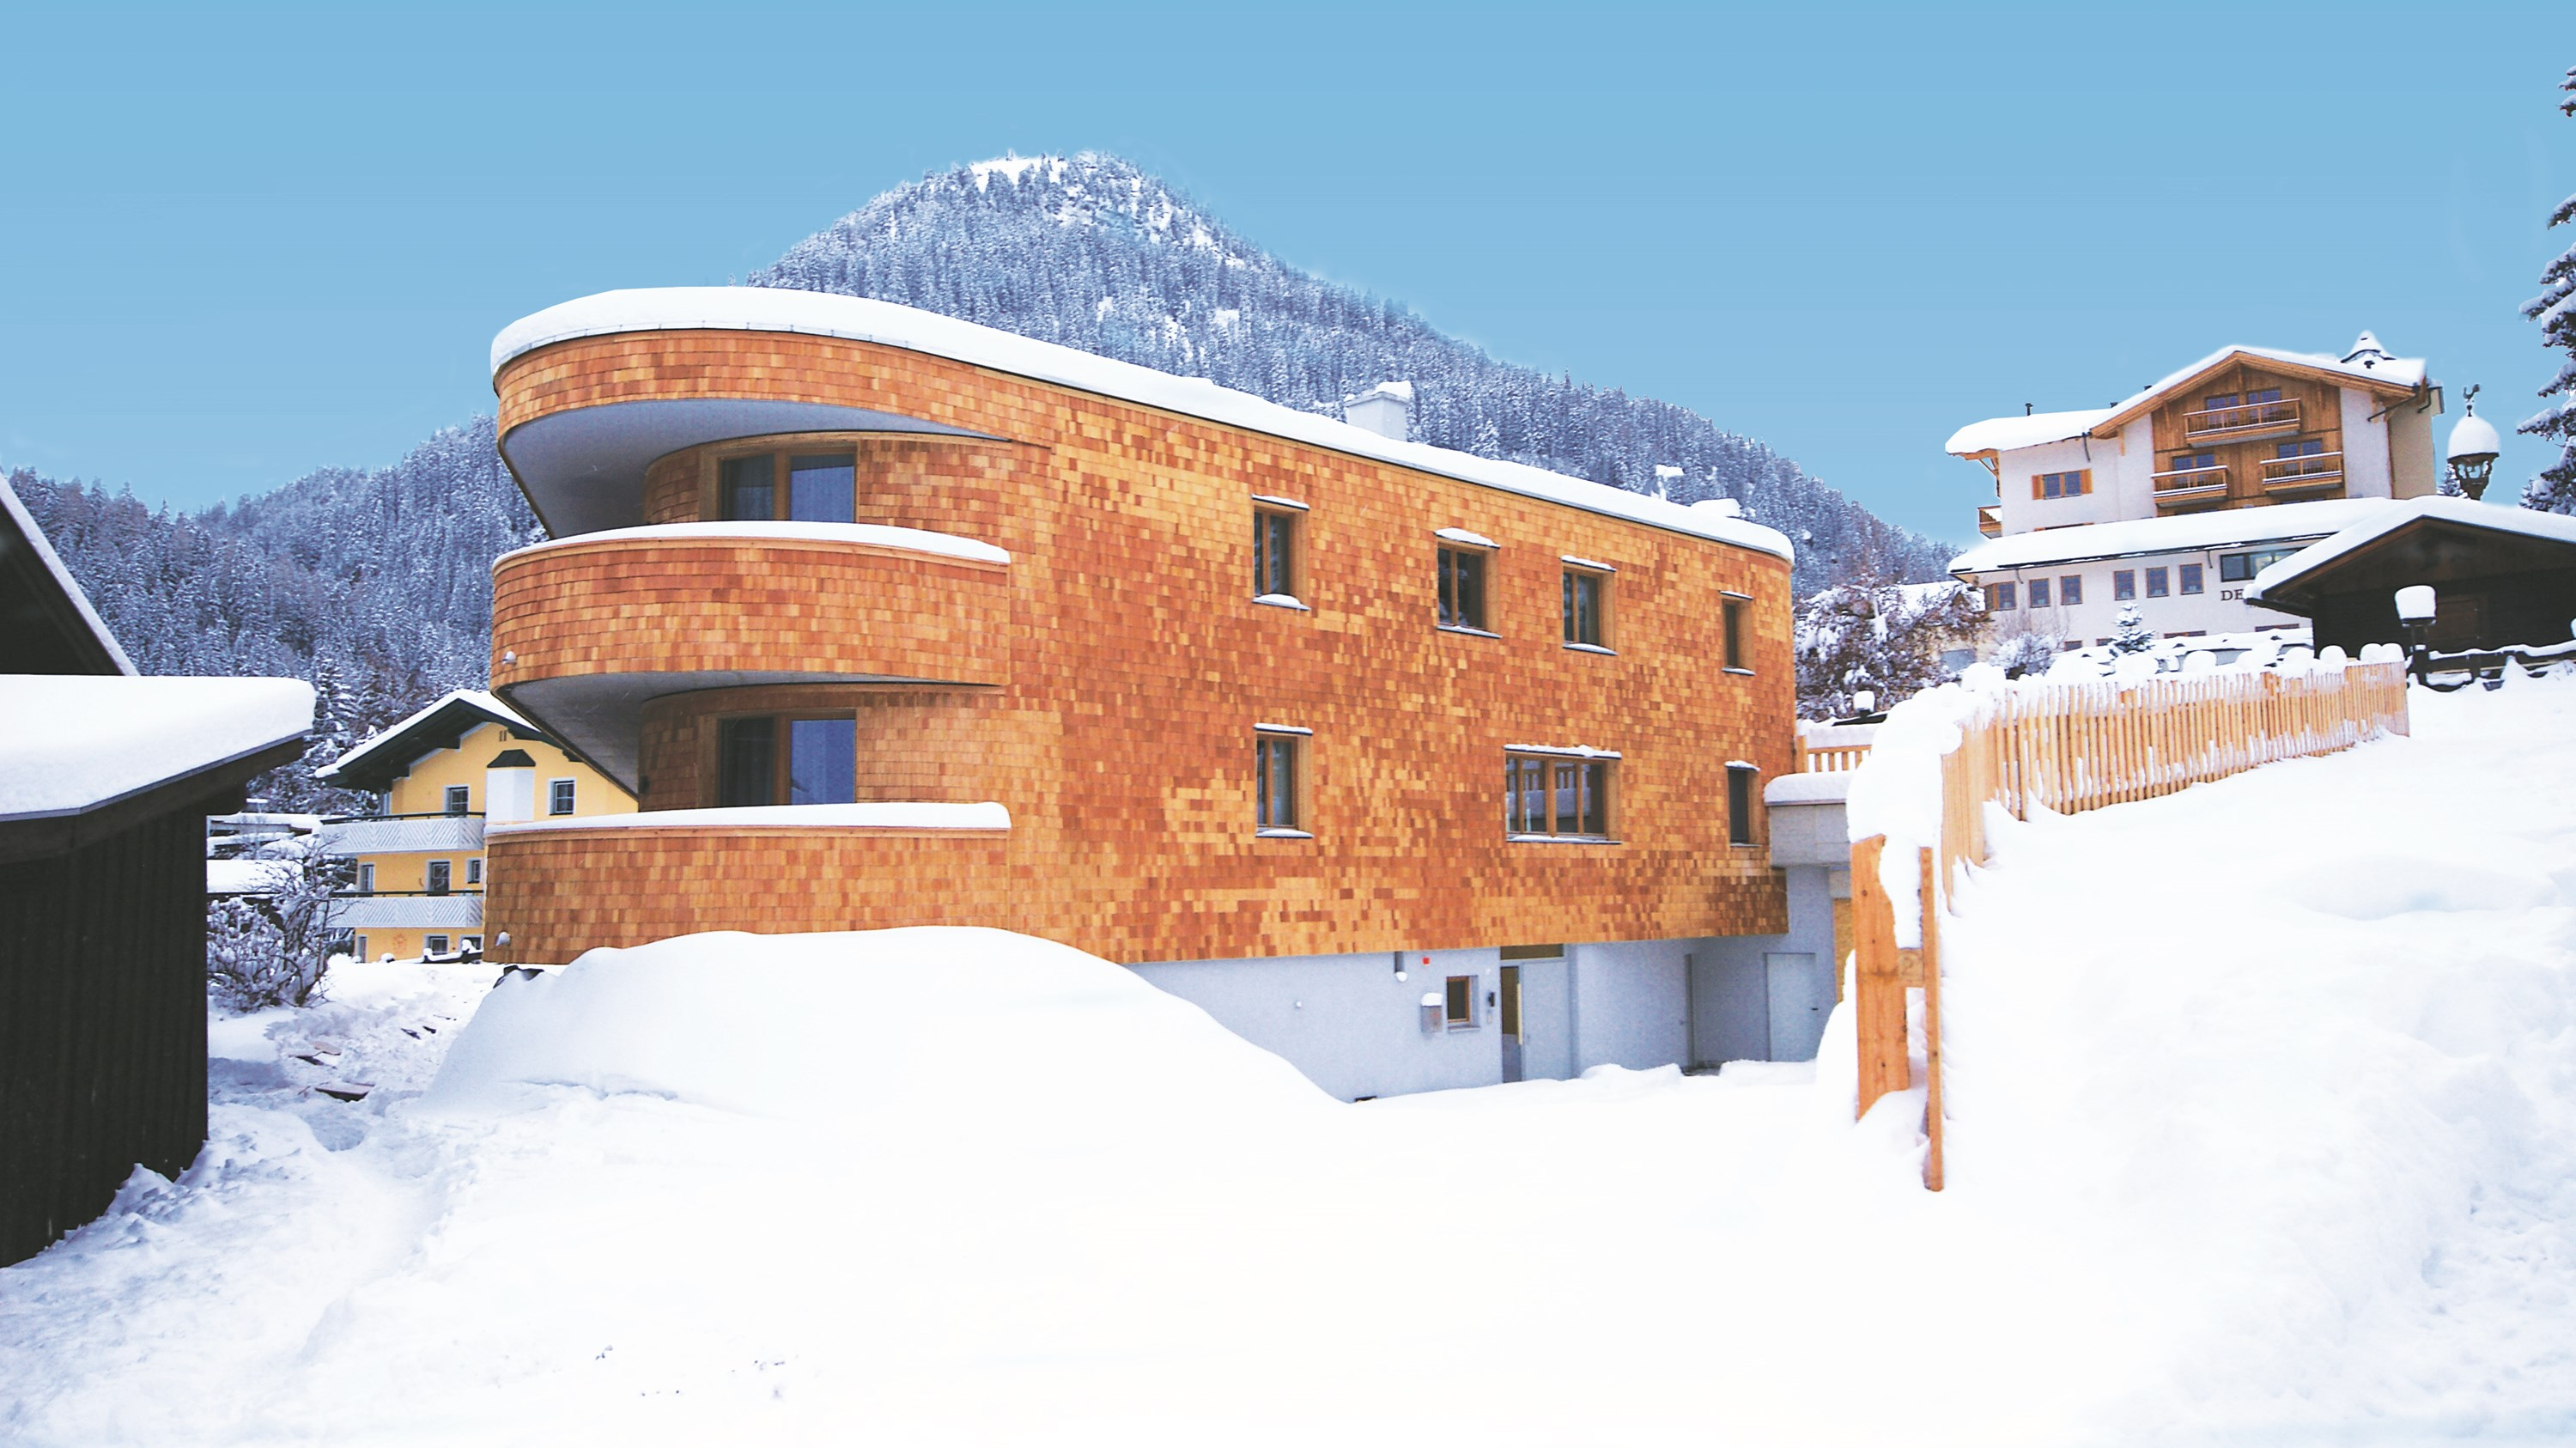 Mountain-Lodge-Chalets-exterior.jpg